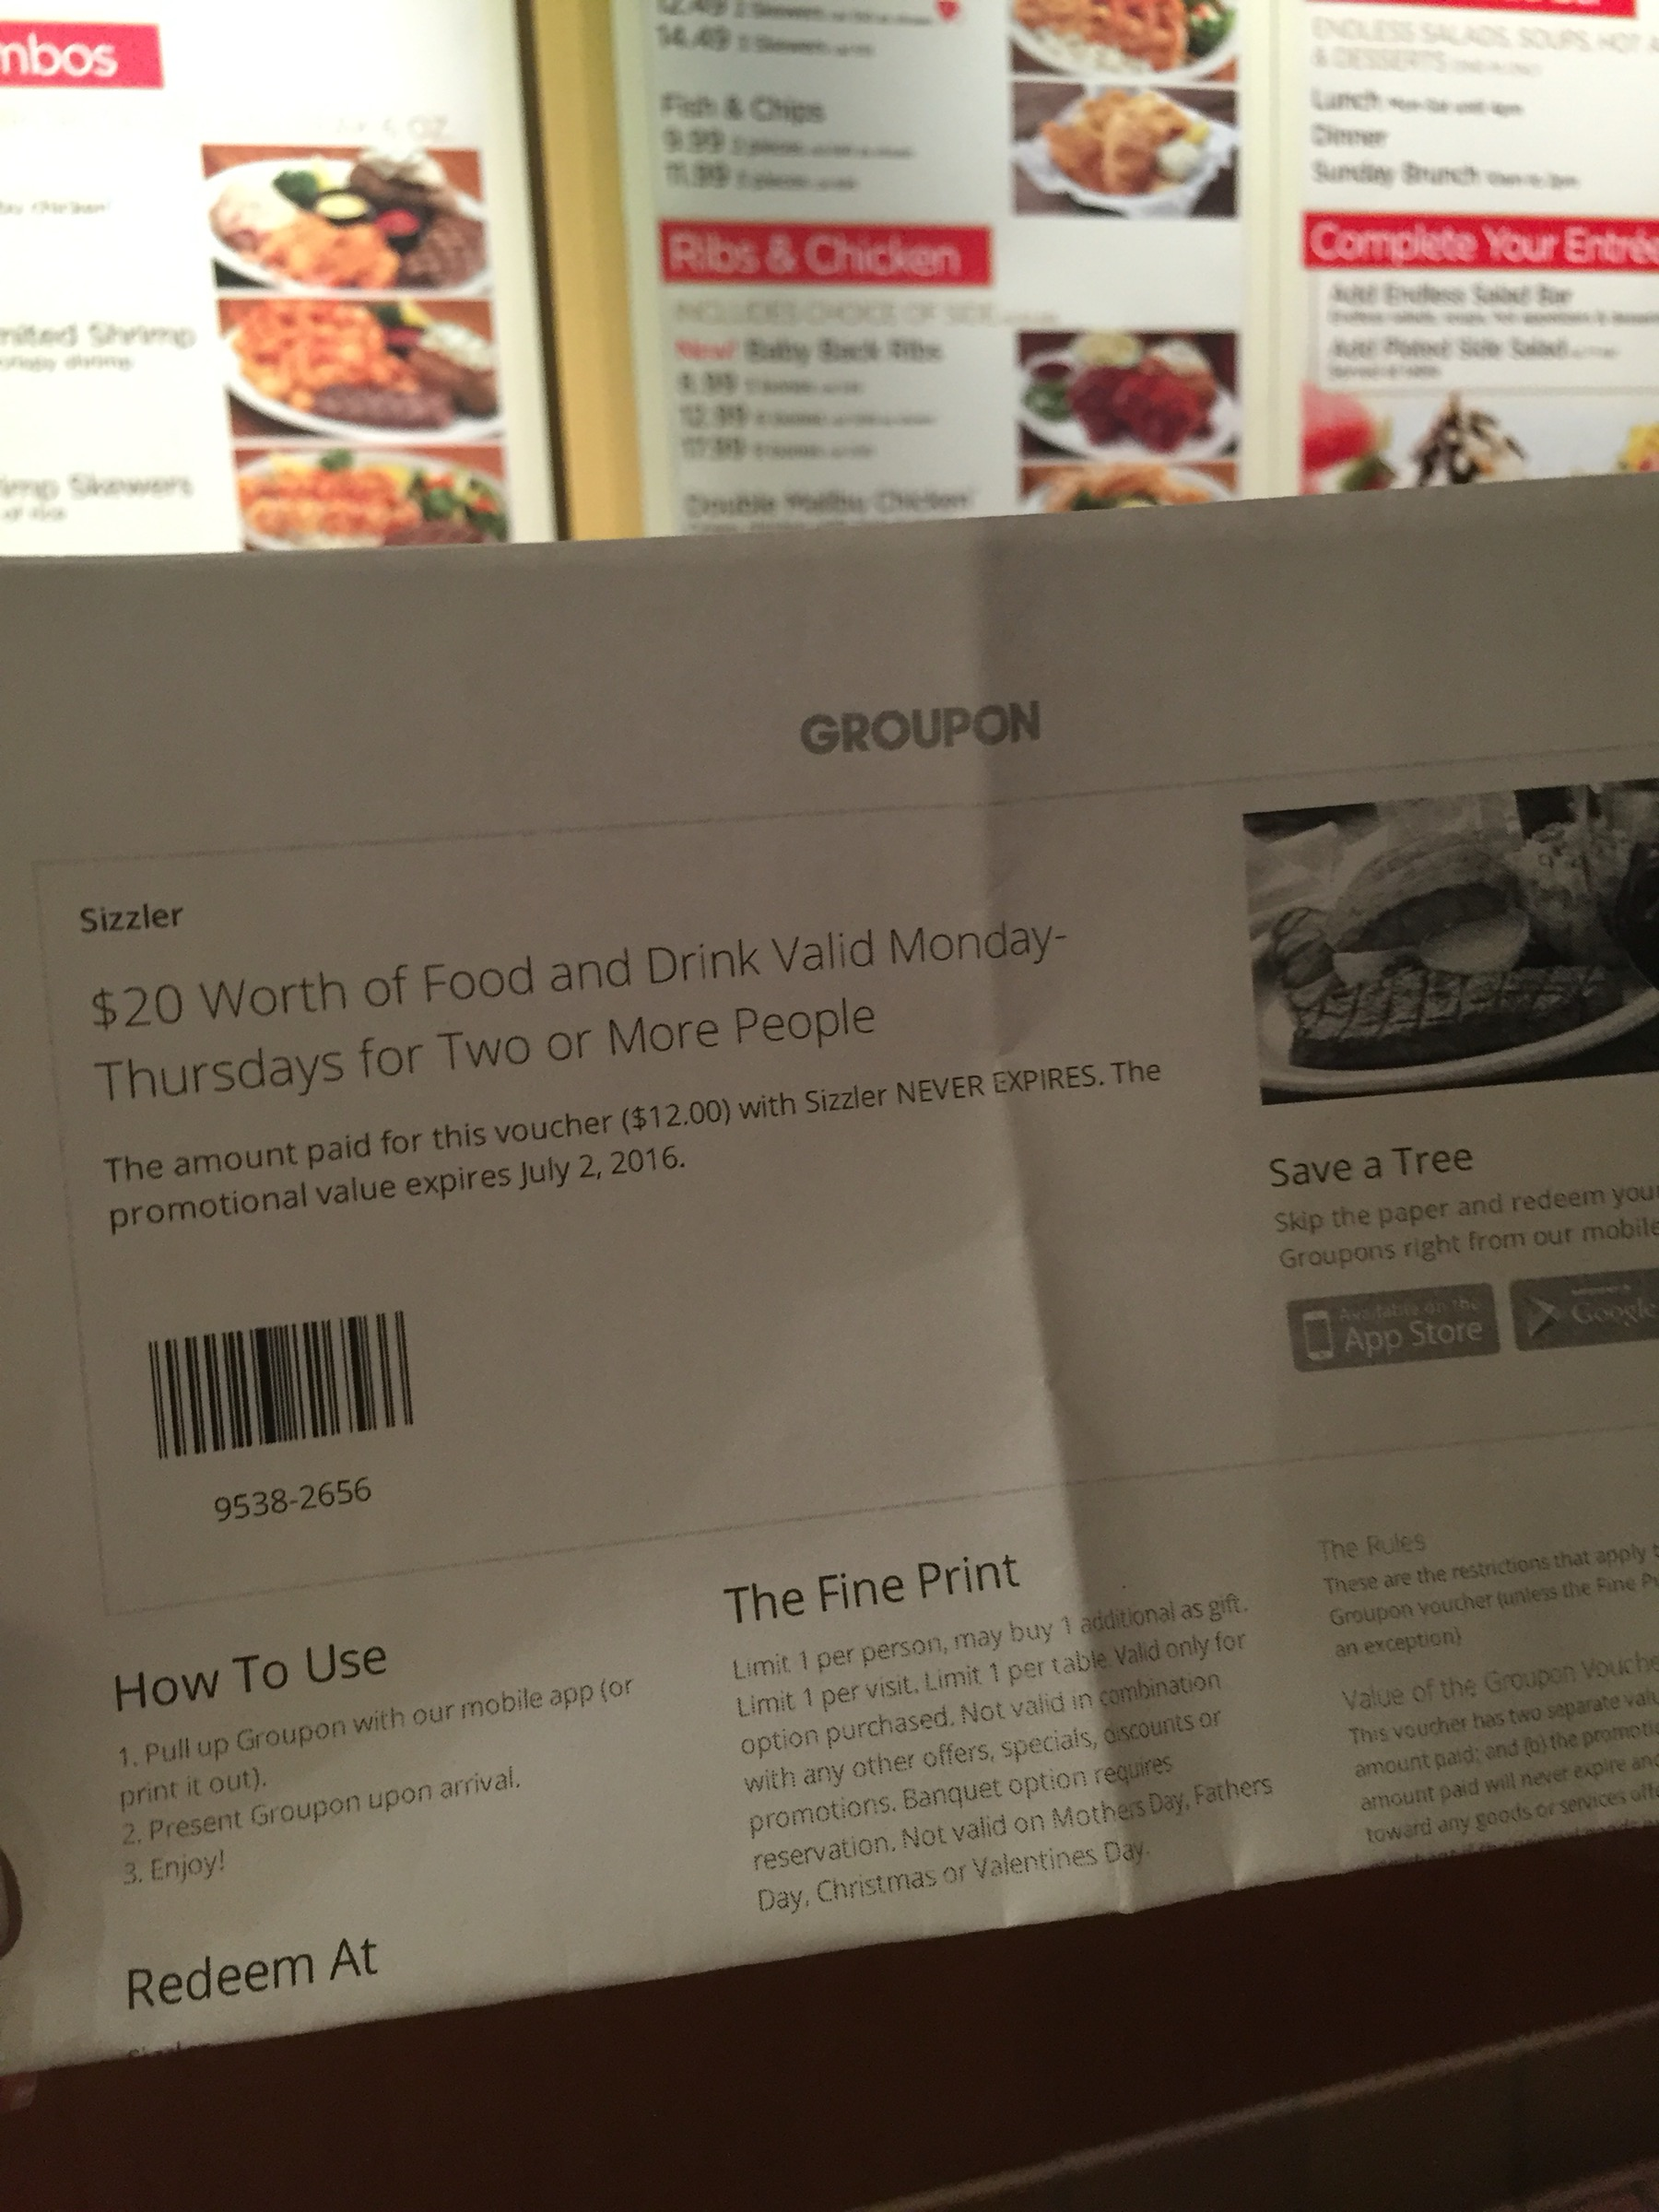 La Mirada: Sizzler… And Groupon – You can Call Me Mochelle